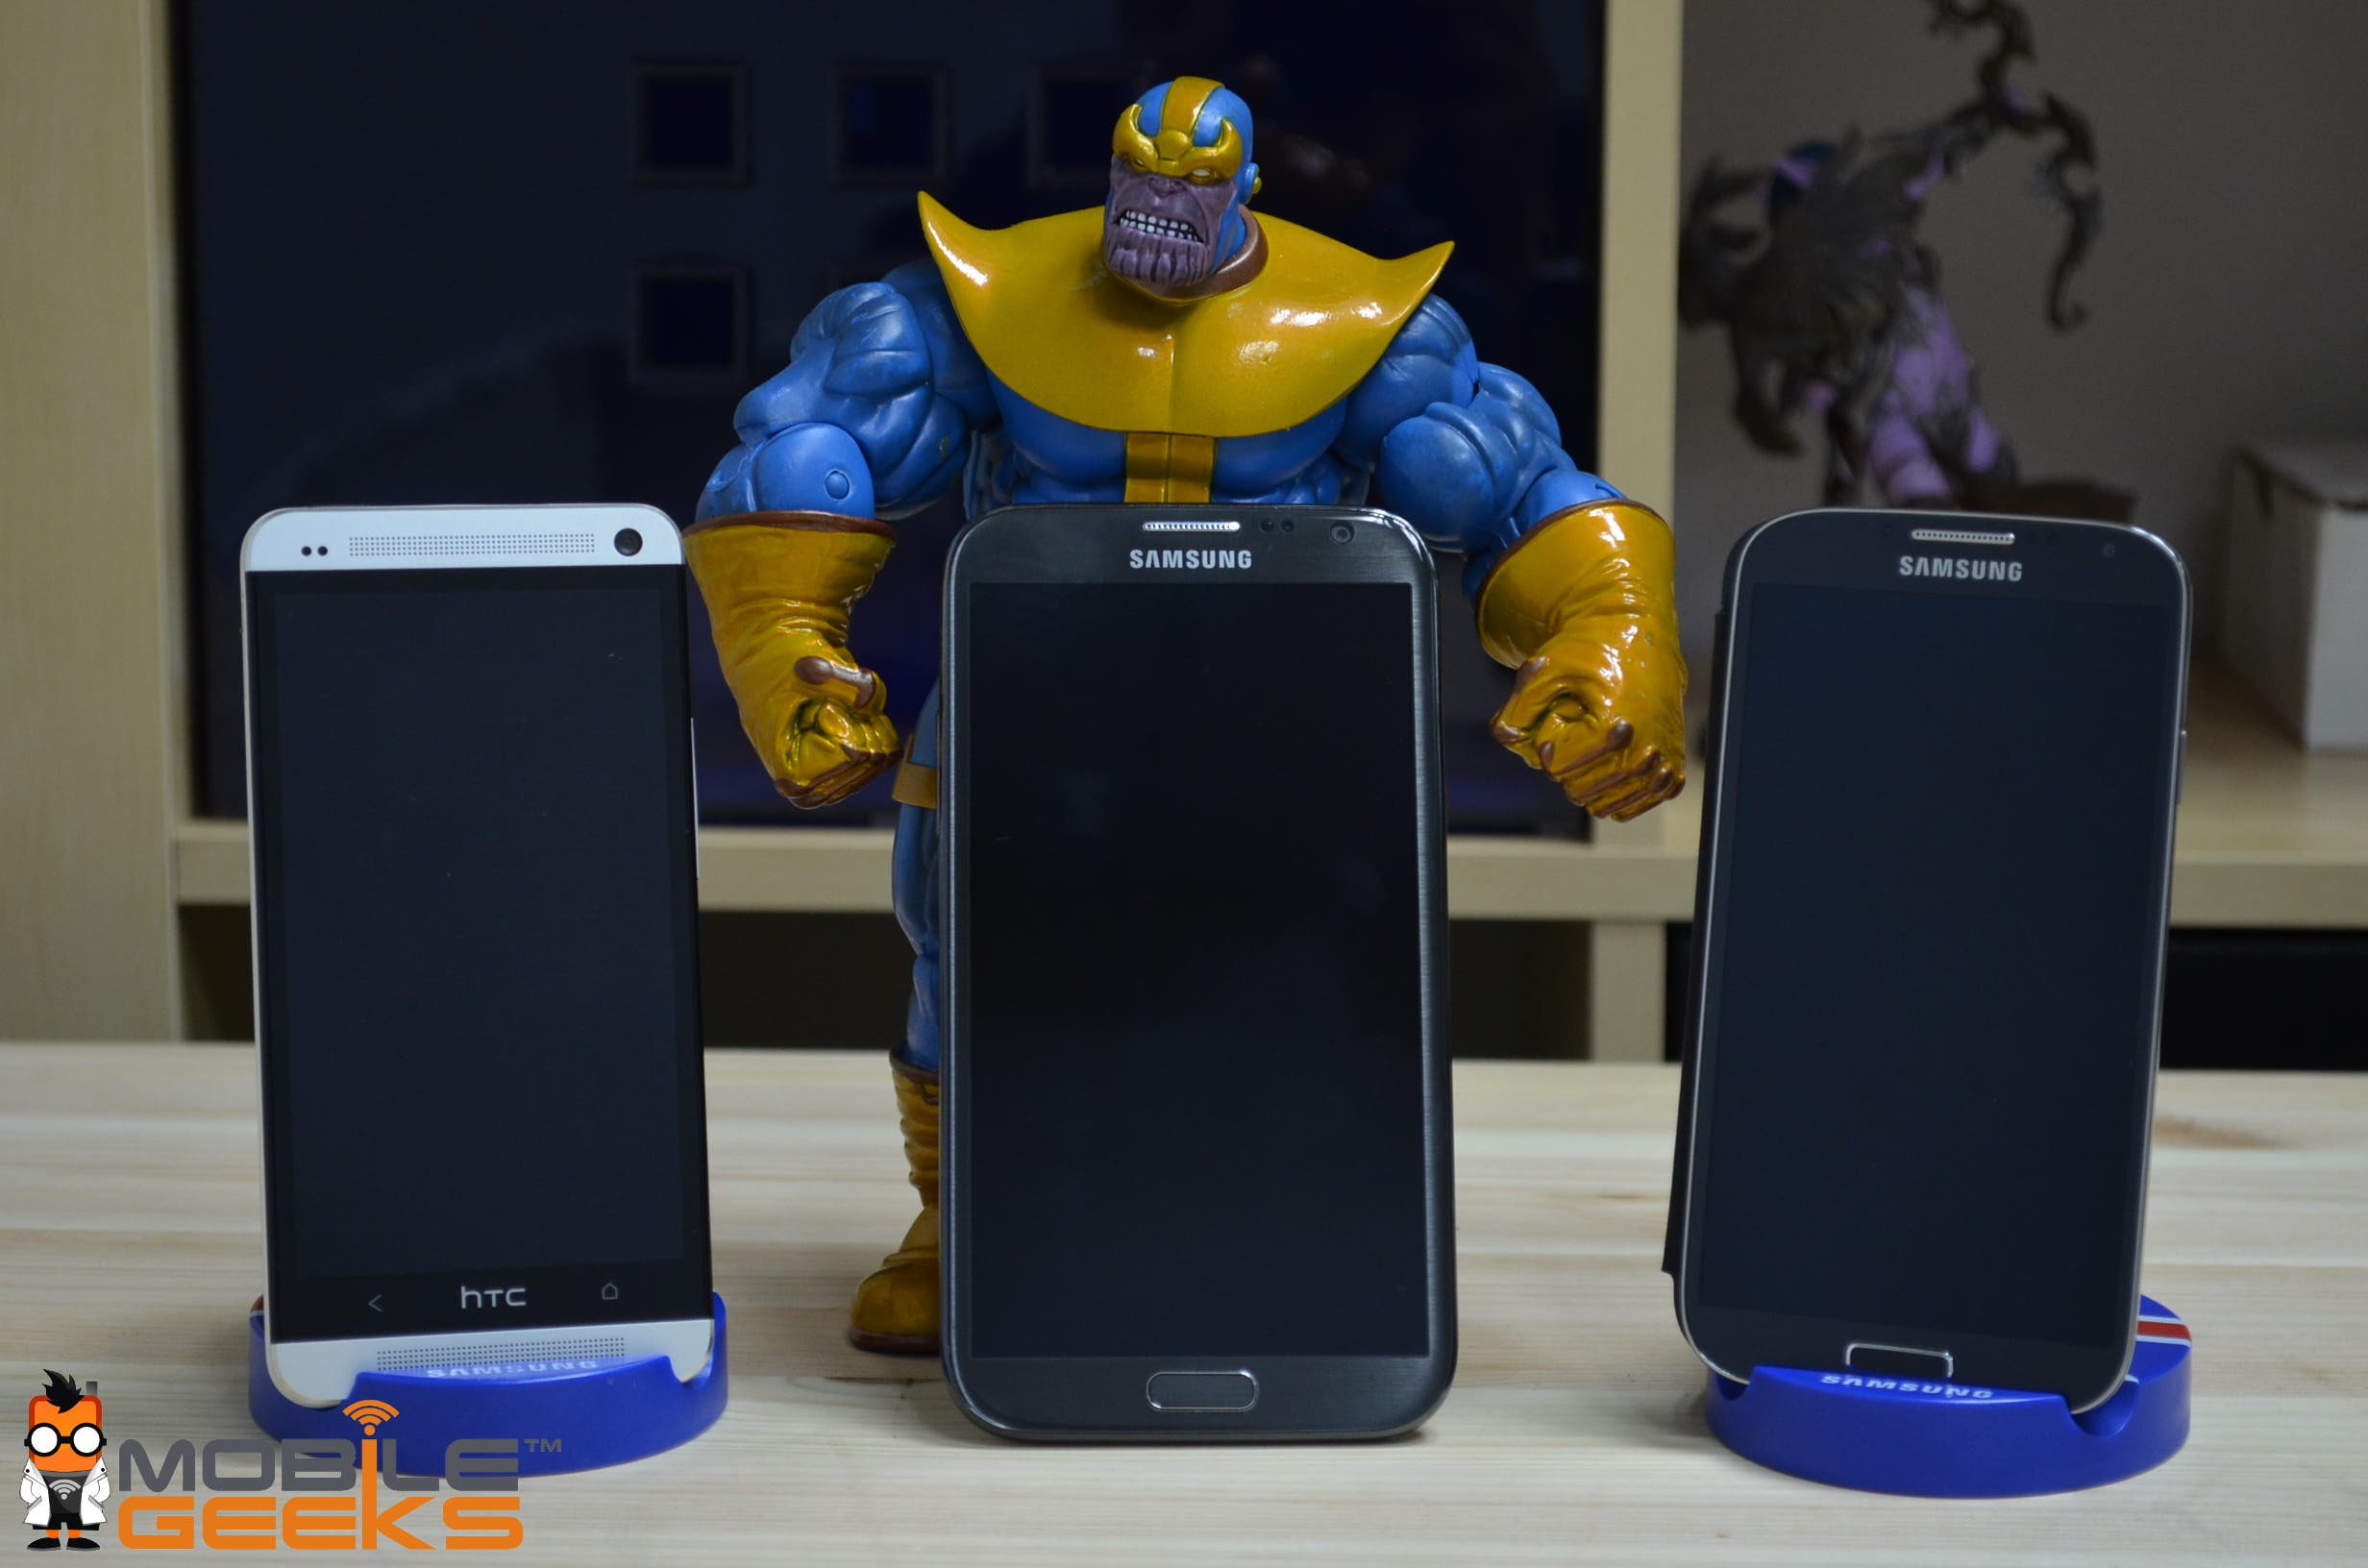 Galaxy S4 vs HTC One vs Galaxy Note 2